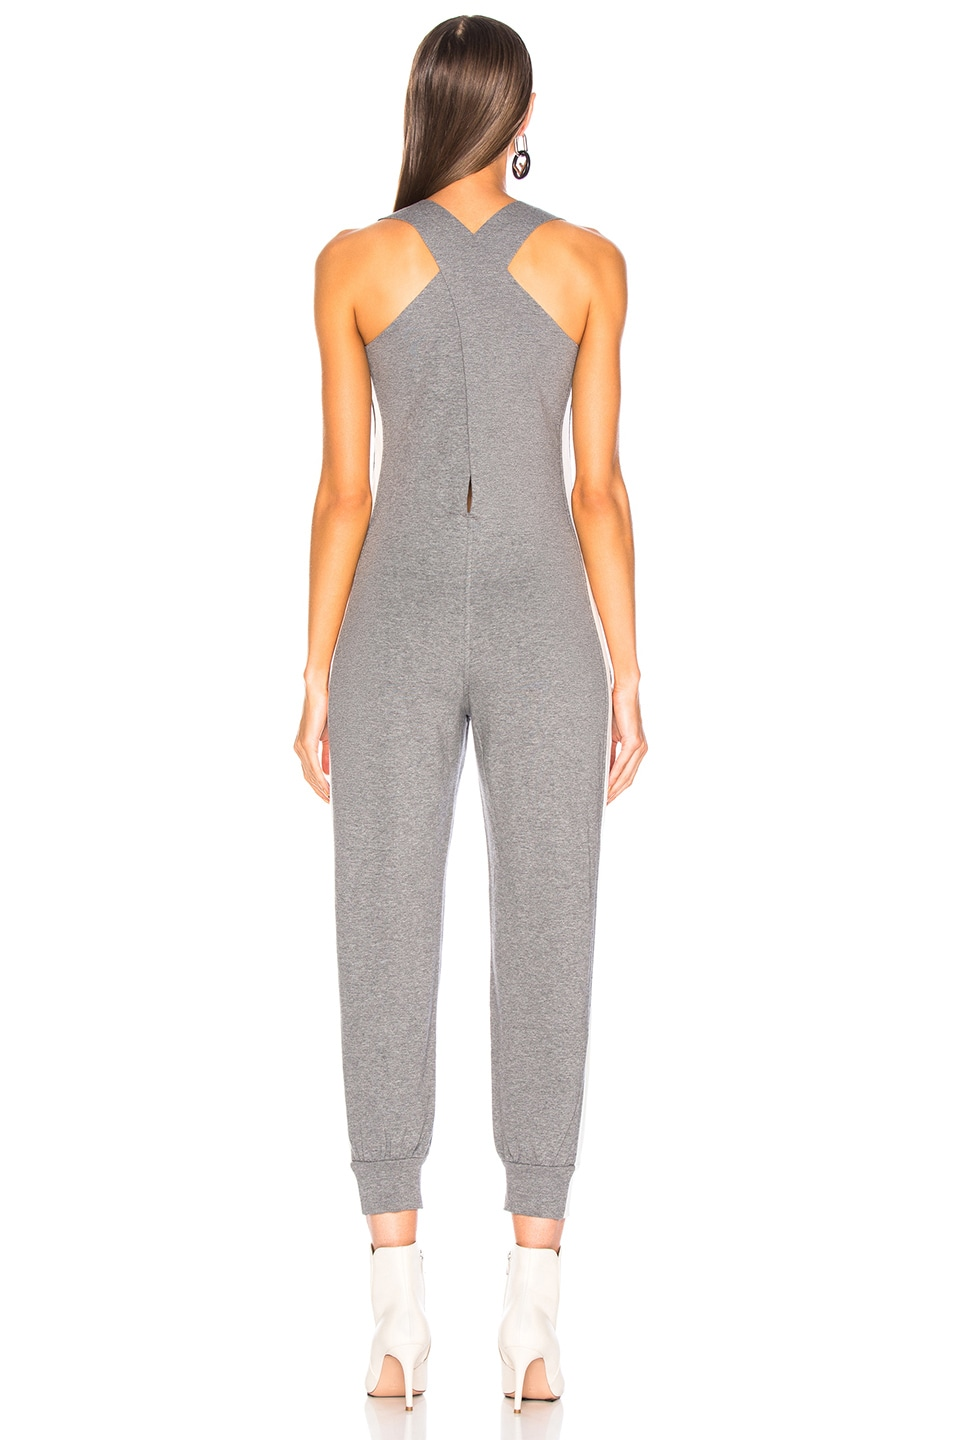 Image 4 of Norma Kamali Side Stripe Cross Back Jog Jumpsuit in Medium Heather Grey & Almost White